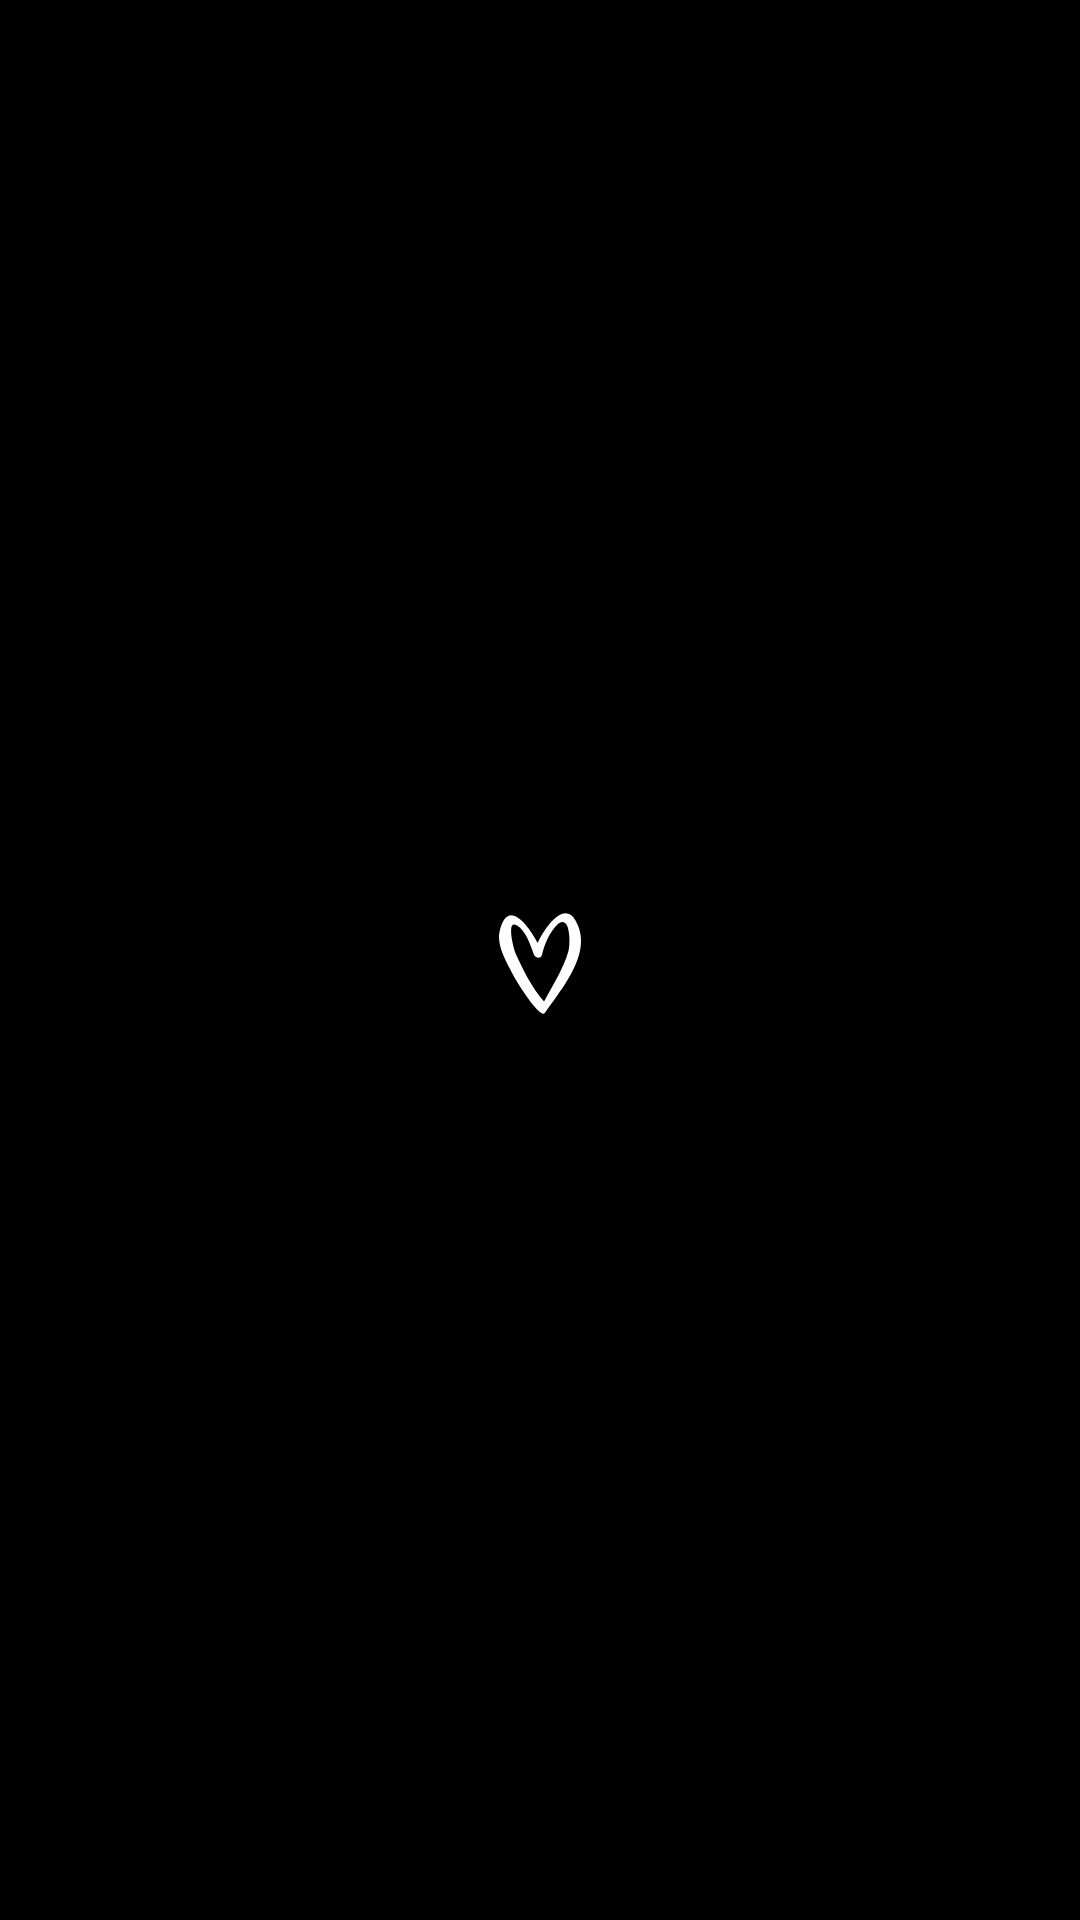 FREE Black Wallpaper Backgrounds For Your Phone & Social Media